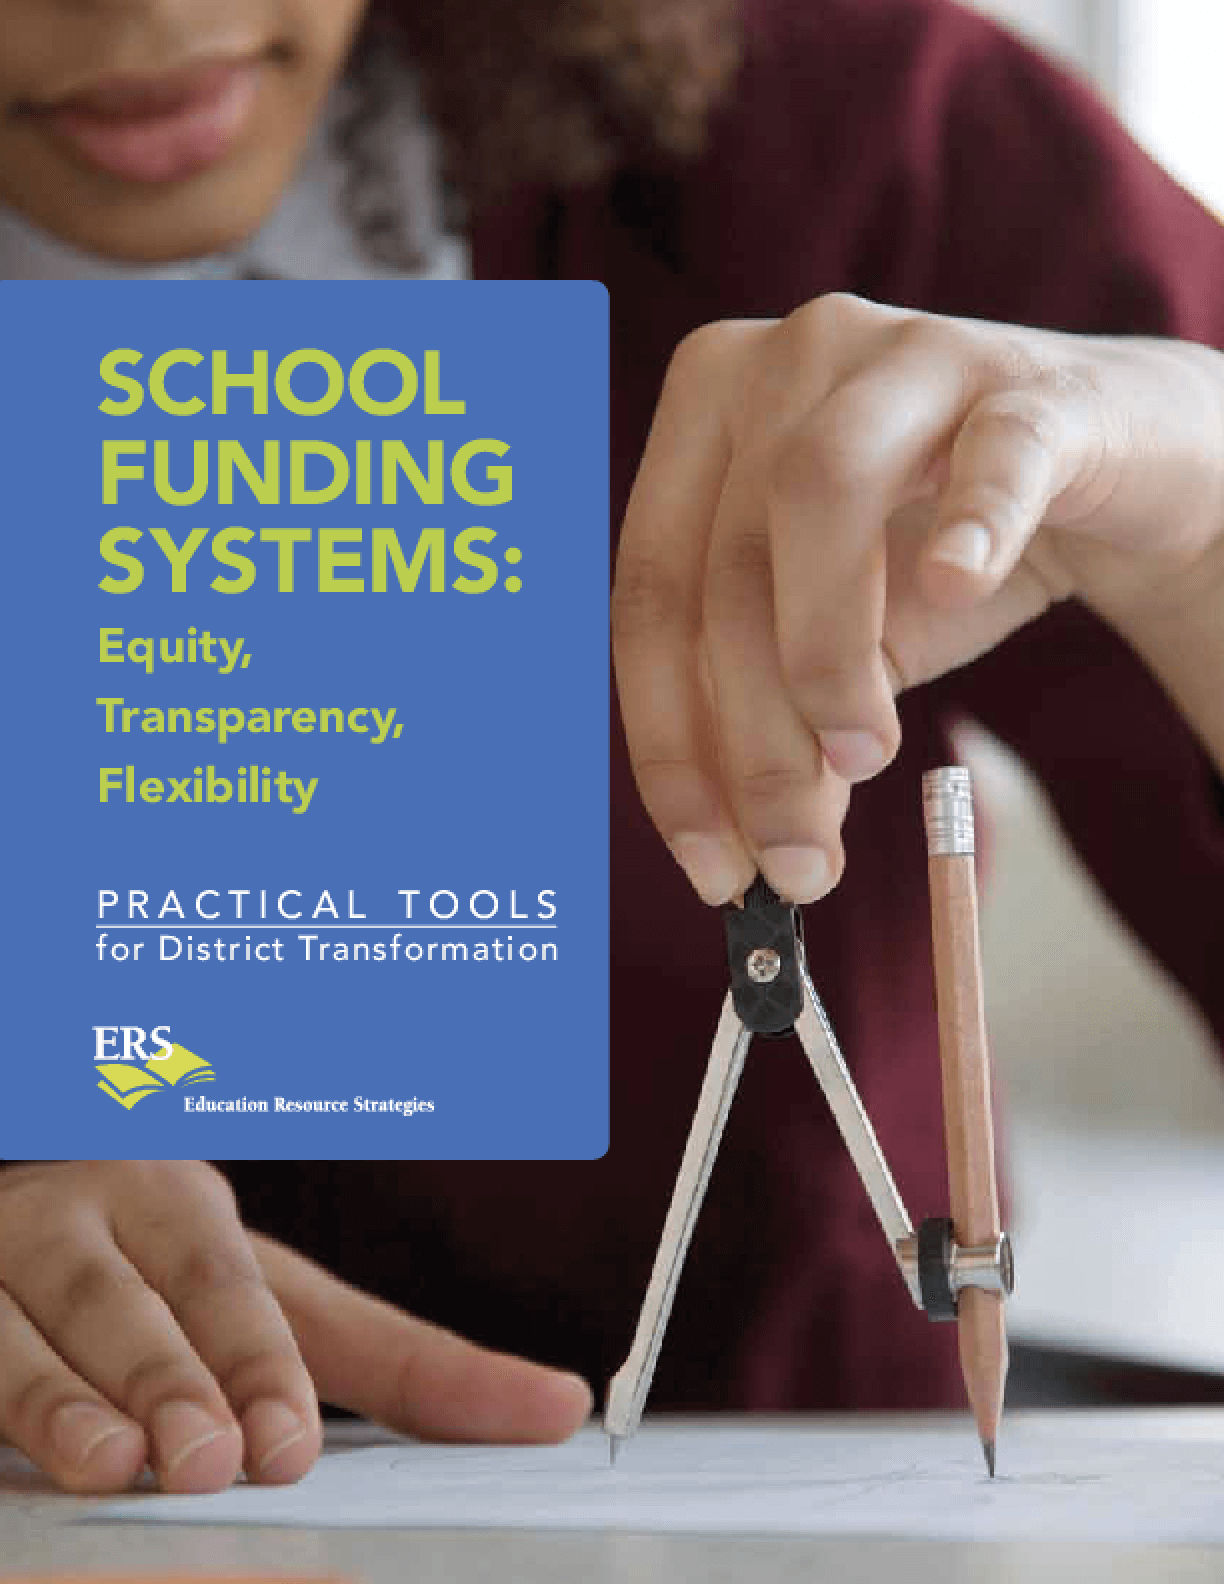 School Funding Systems: Equity, Transparency, Flexibility